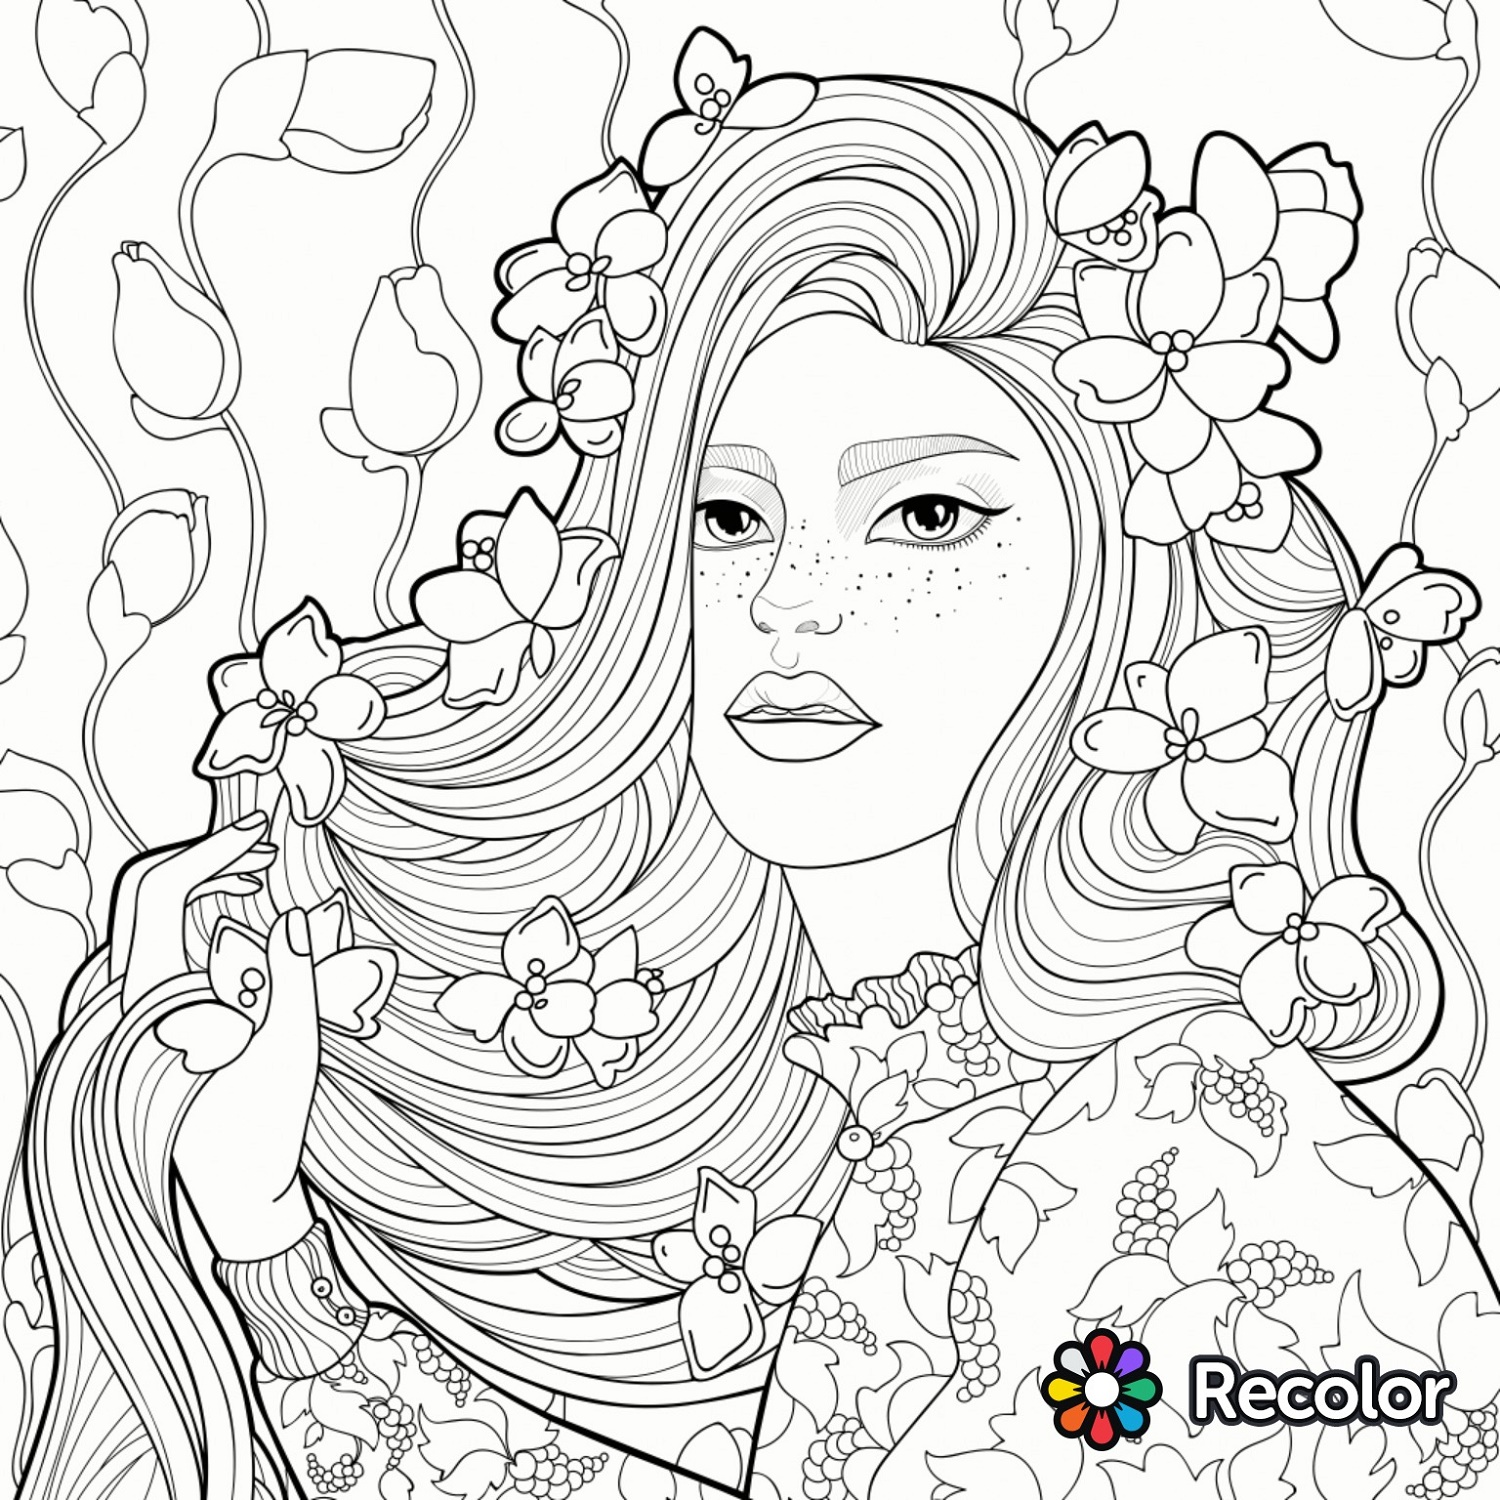 Recolor Coloring Book Beauty Printable